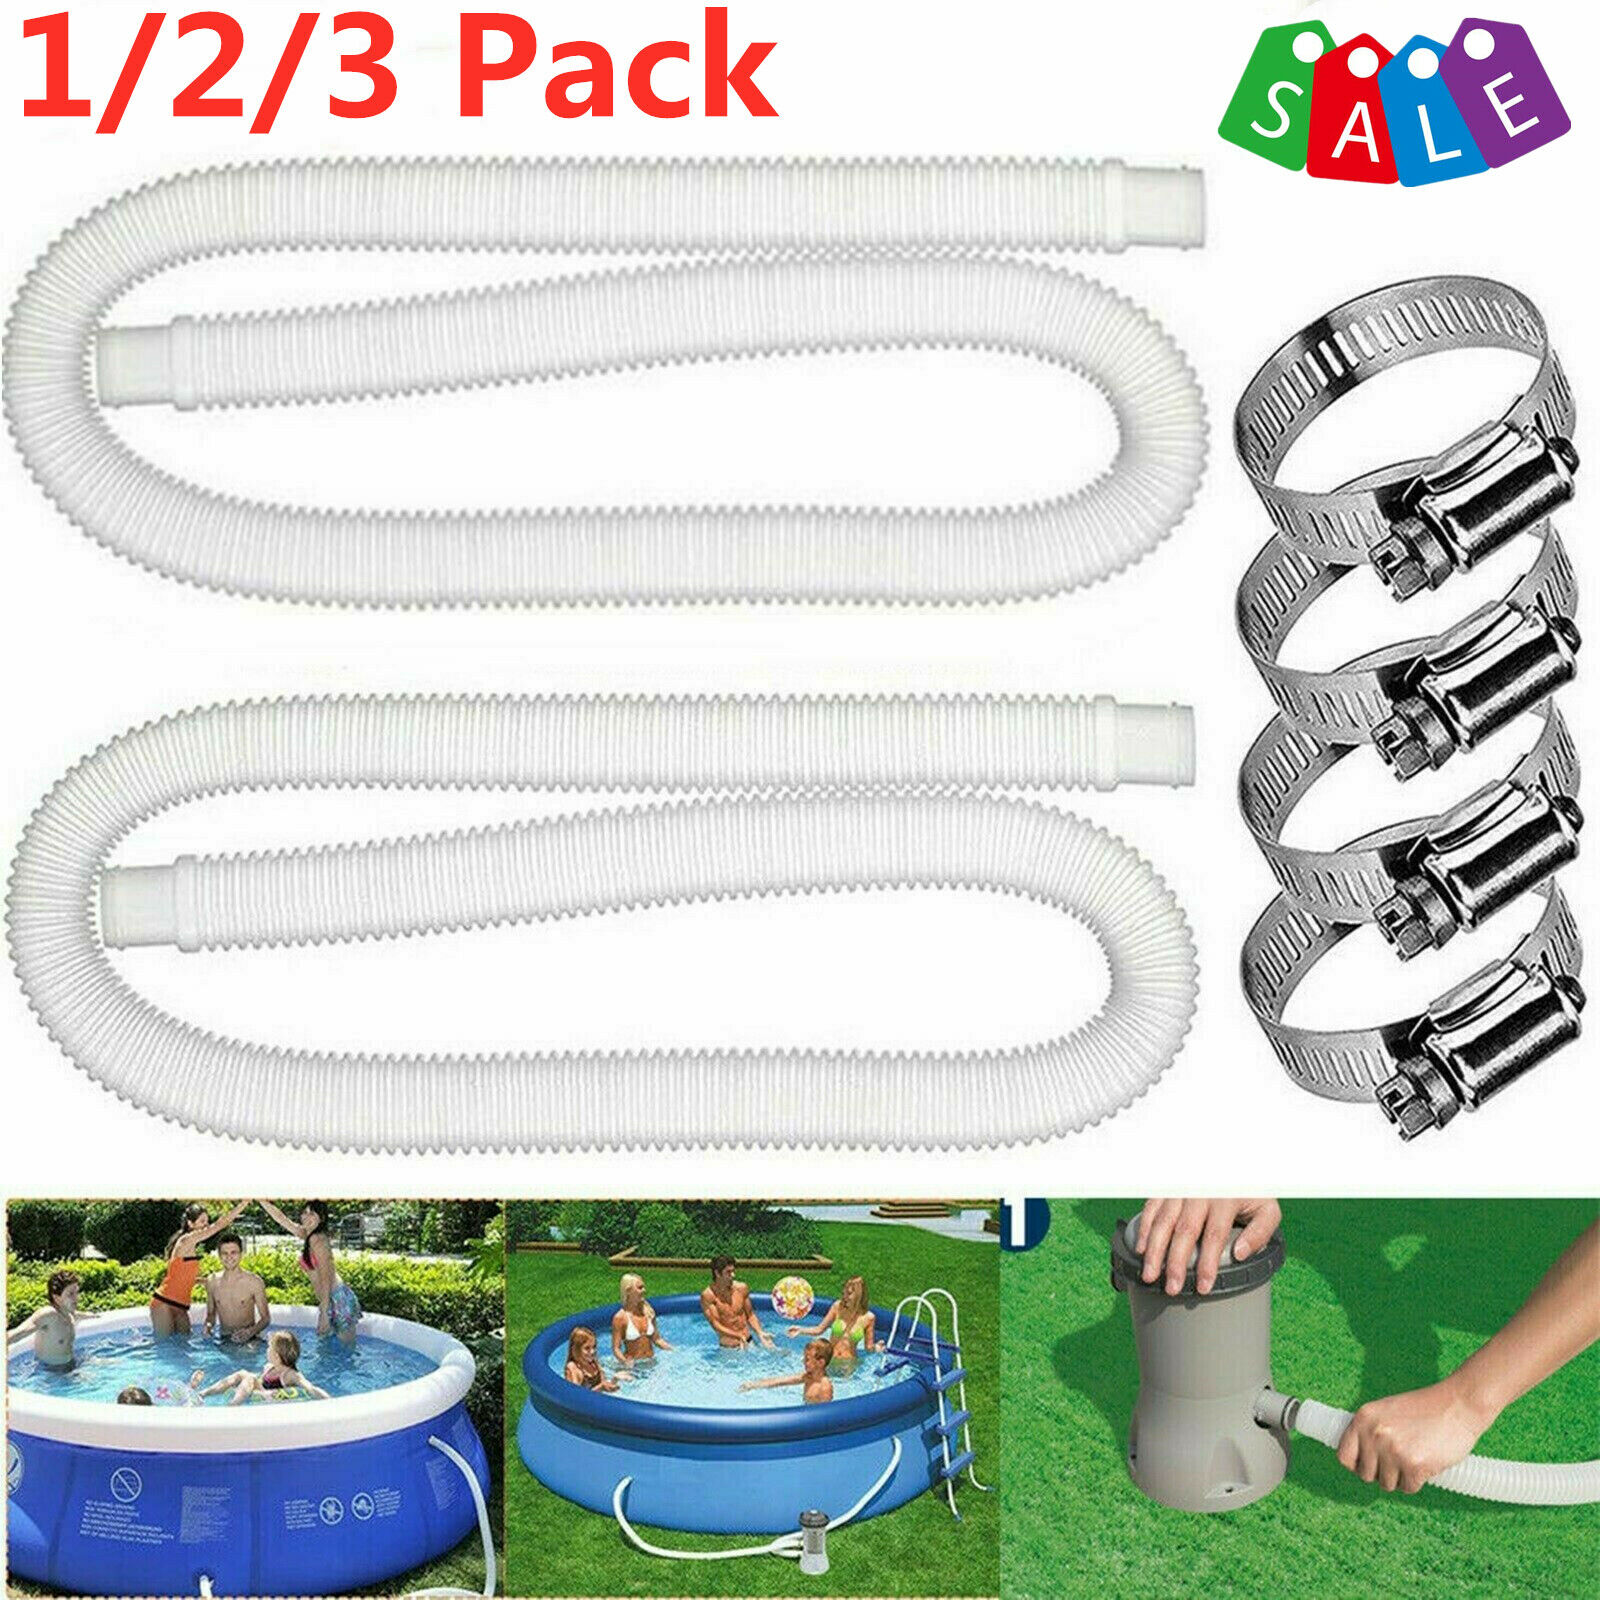 1/2/3 Pack 59'' Filter Pump Hoses Swimming Pool Replacement Above Ground Hose